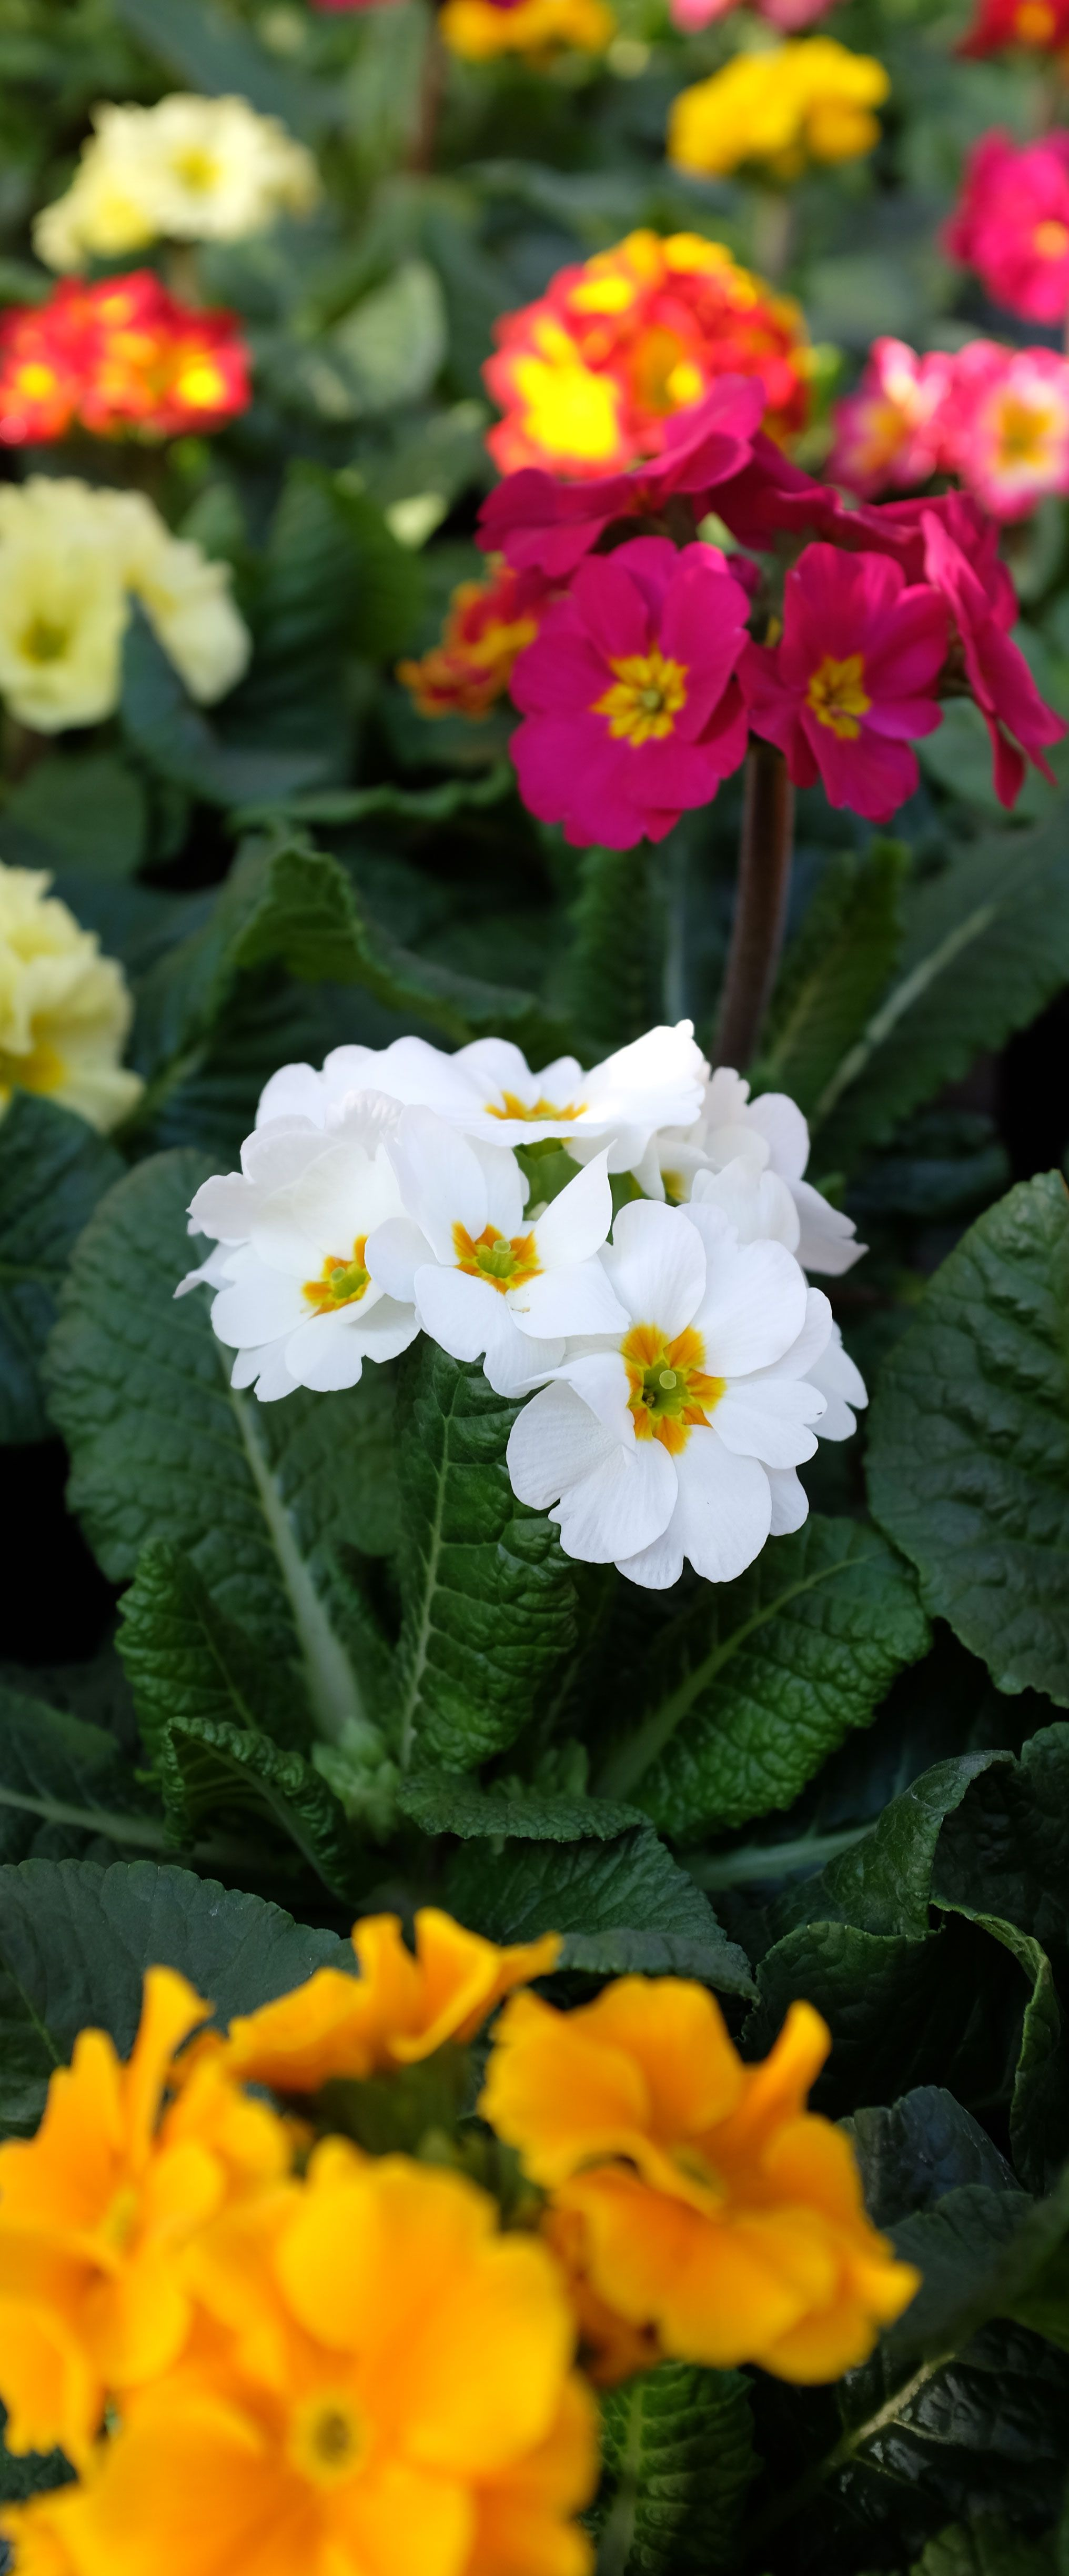 The colours of #primroses make your winter garden an oasis of happiness and joy! #Agricola #wintercolours #gardenlover #waitingforspring